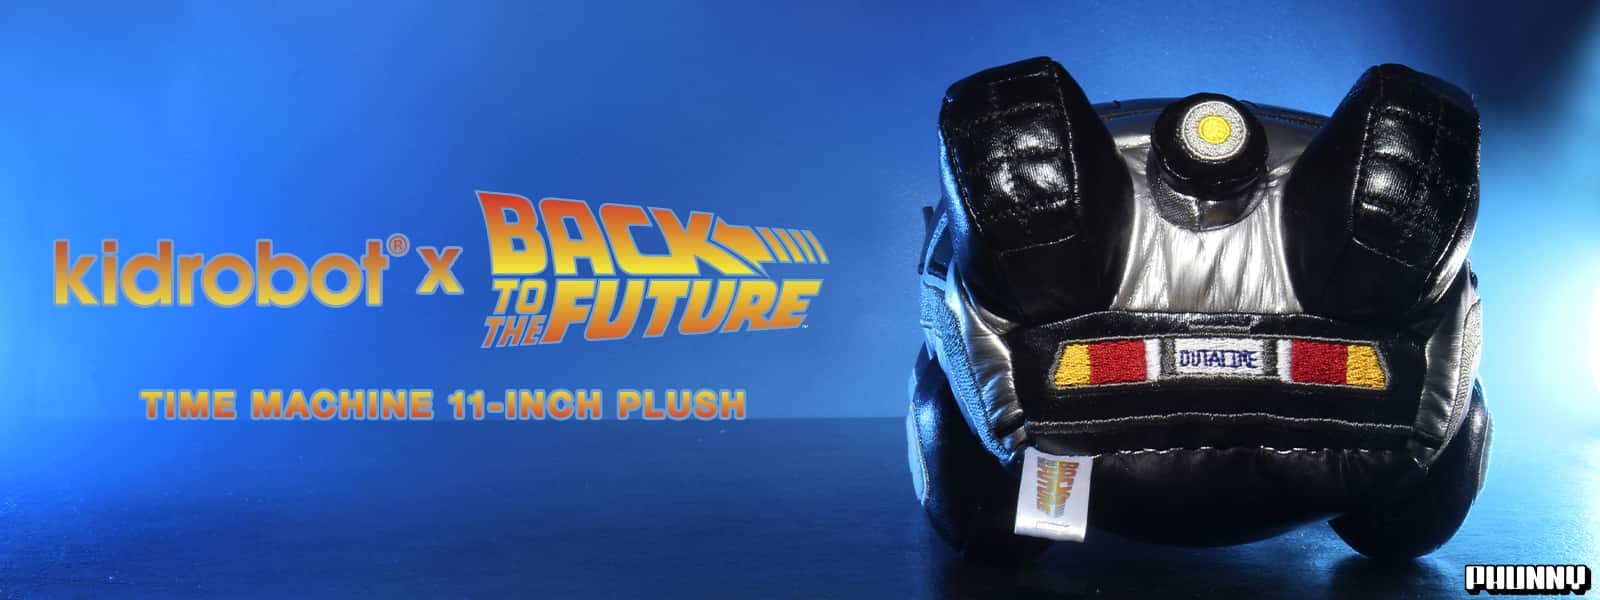 Back to the Future Delorean Time Machine Plush